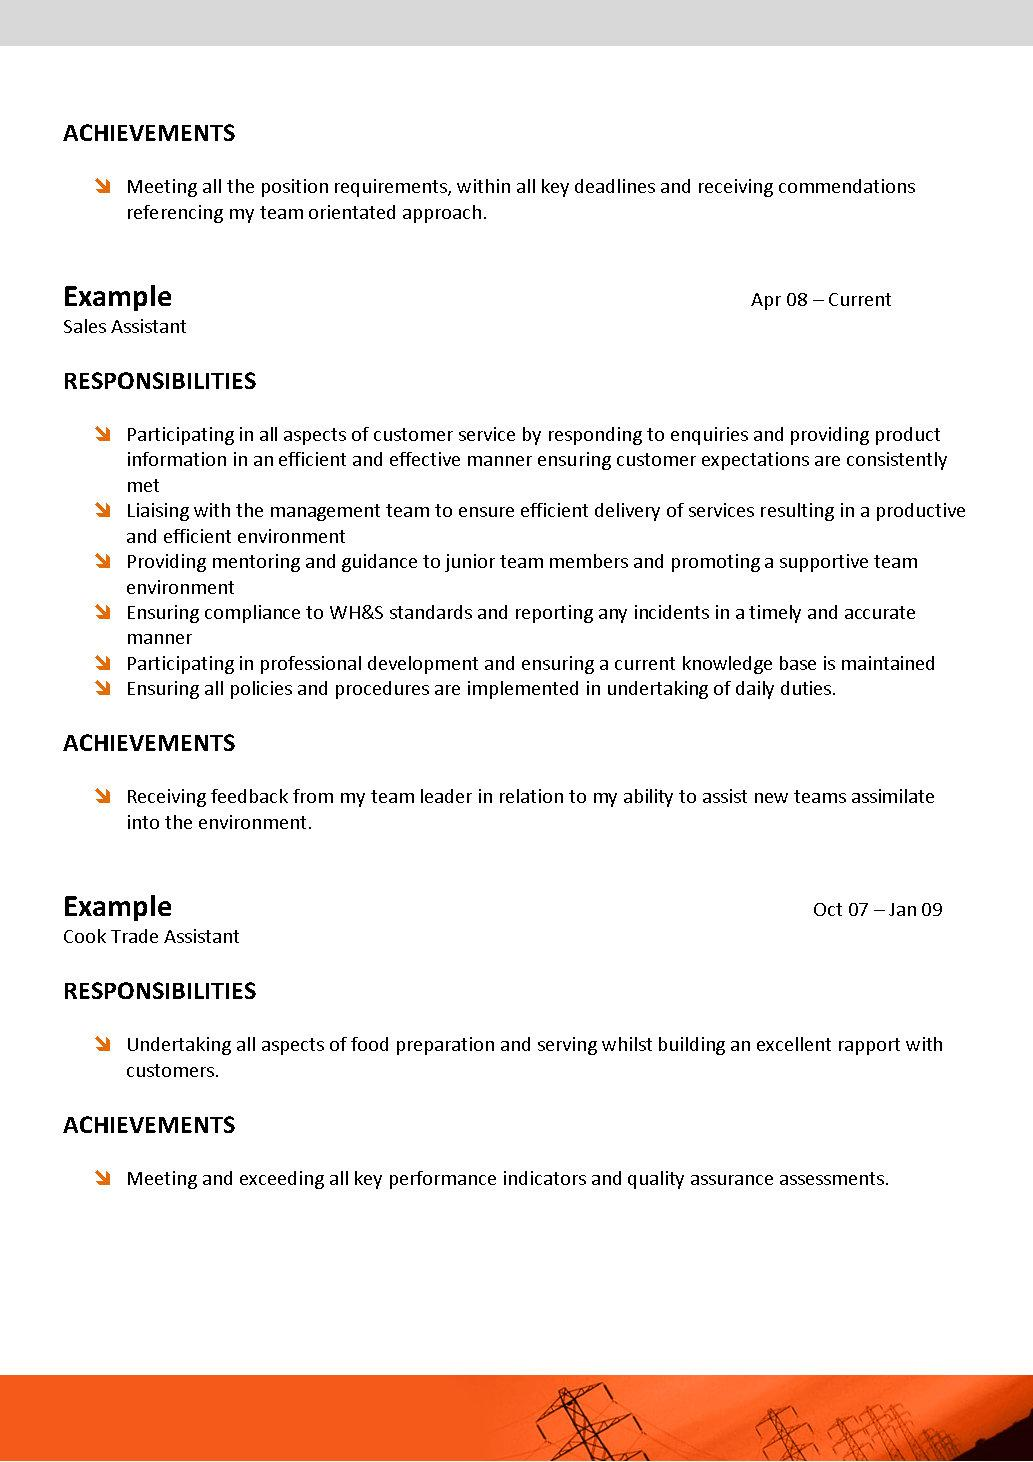 Call Center Sample Resume With No Experience We Can Help With Professional Resume Writing Resume